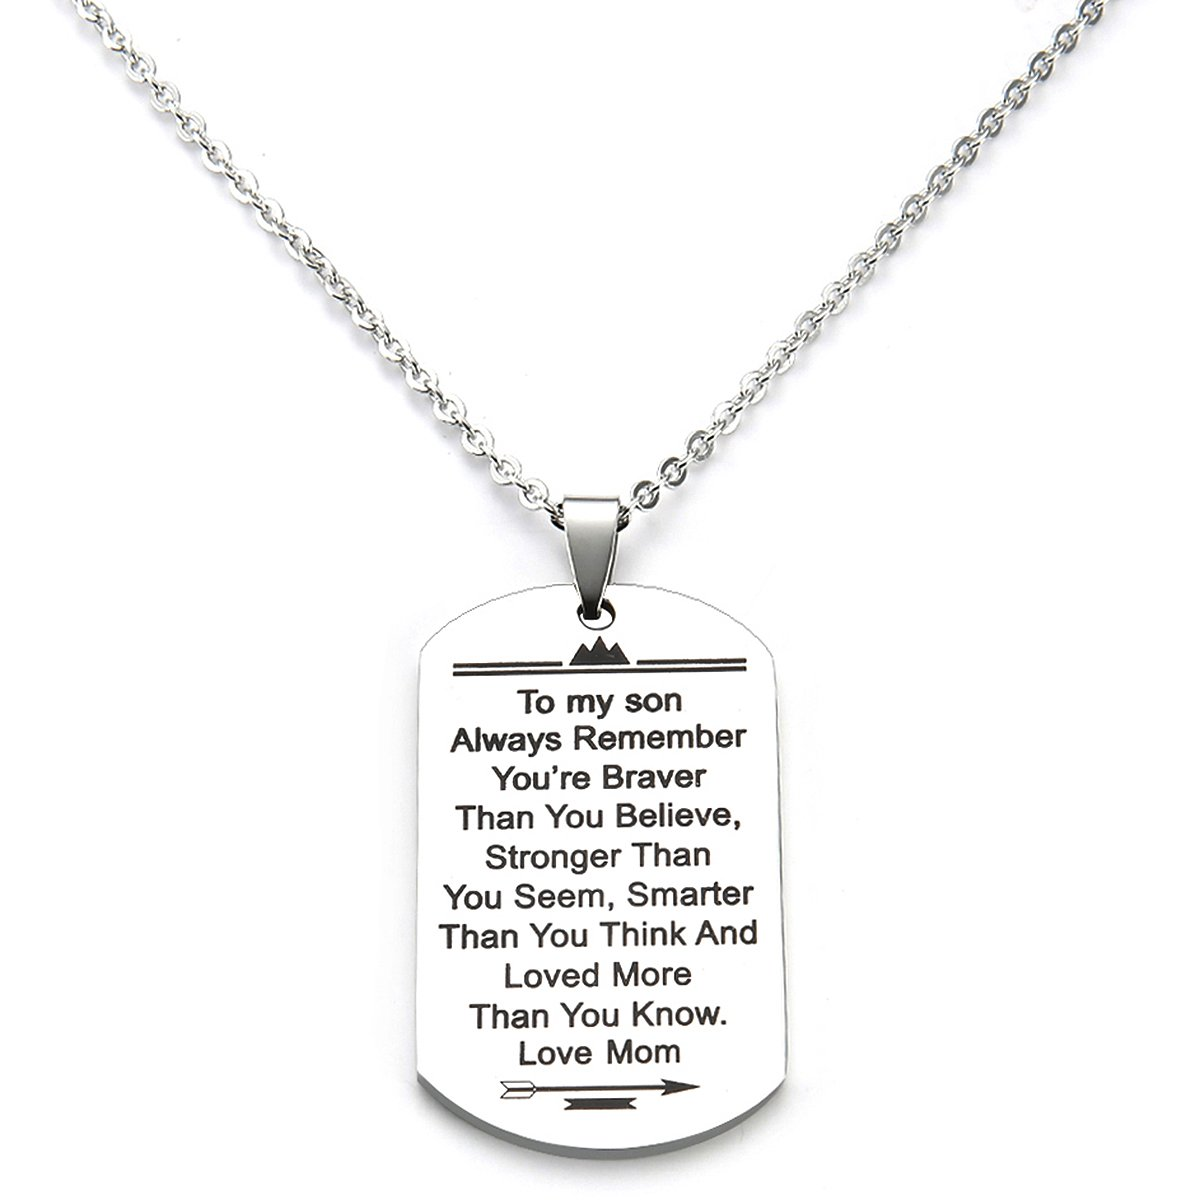 Stainless Steel Dog Tag Letters To my son....love mom Pendant Necklace, Inspirational Gifts For Son Jewelry danjie UK_B078Q1P7X4